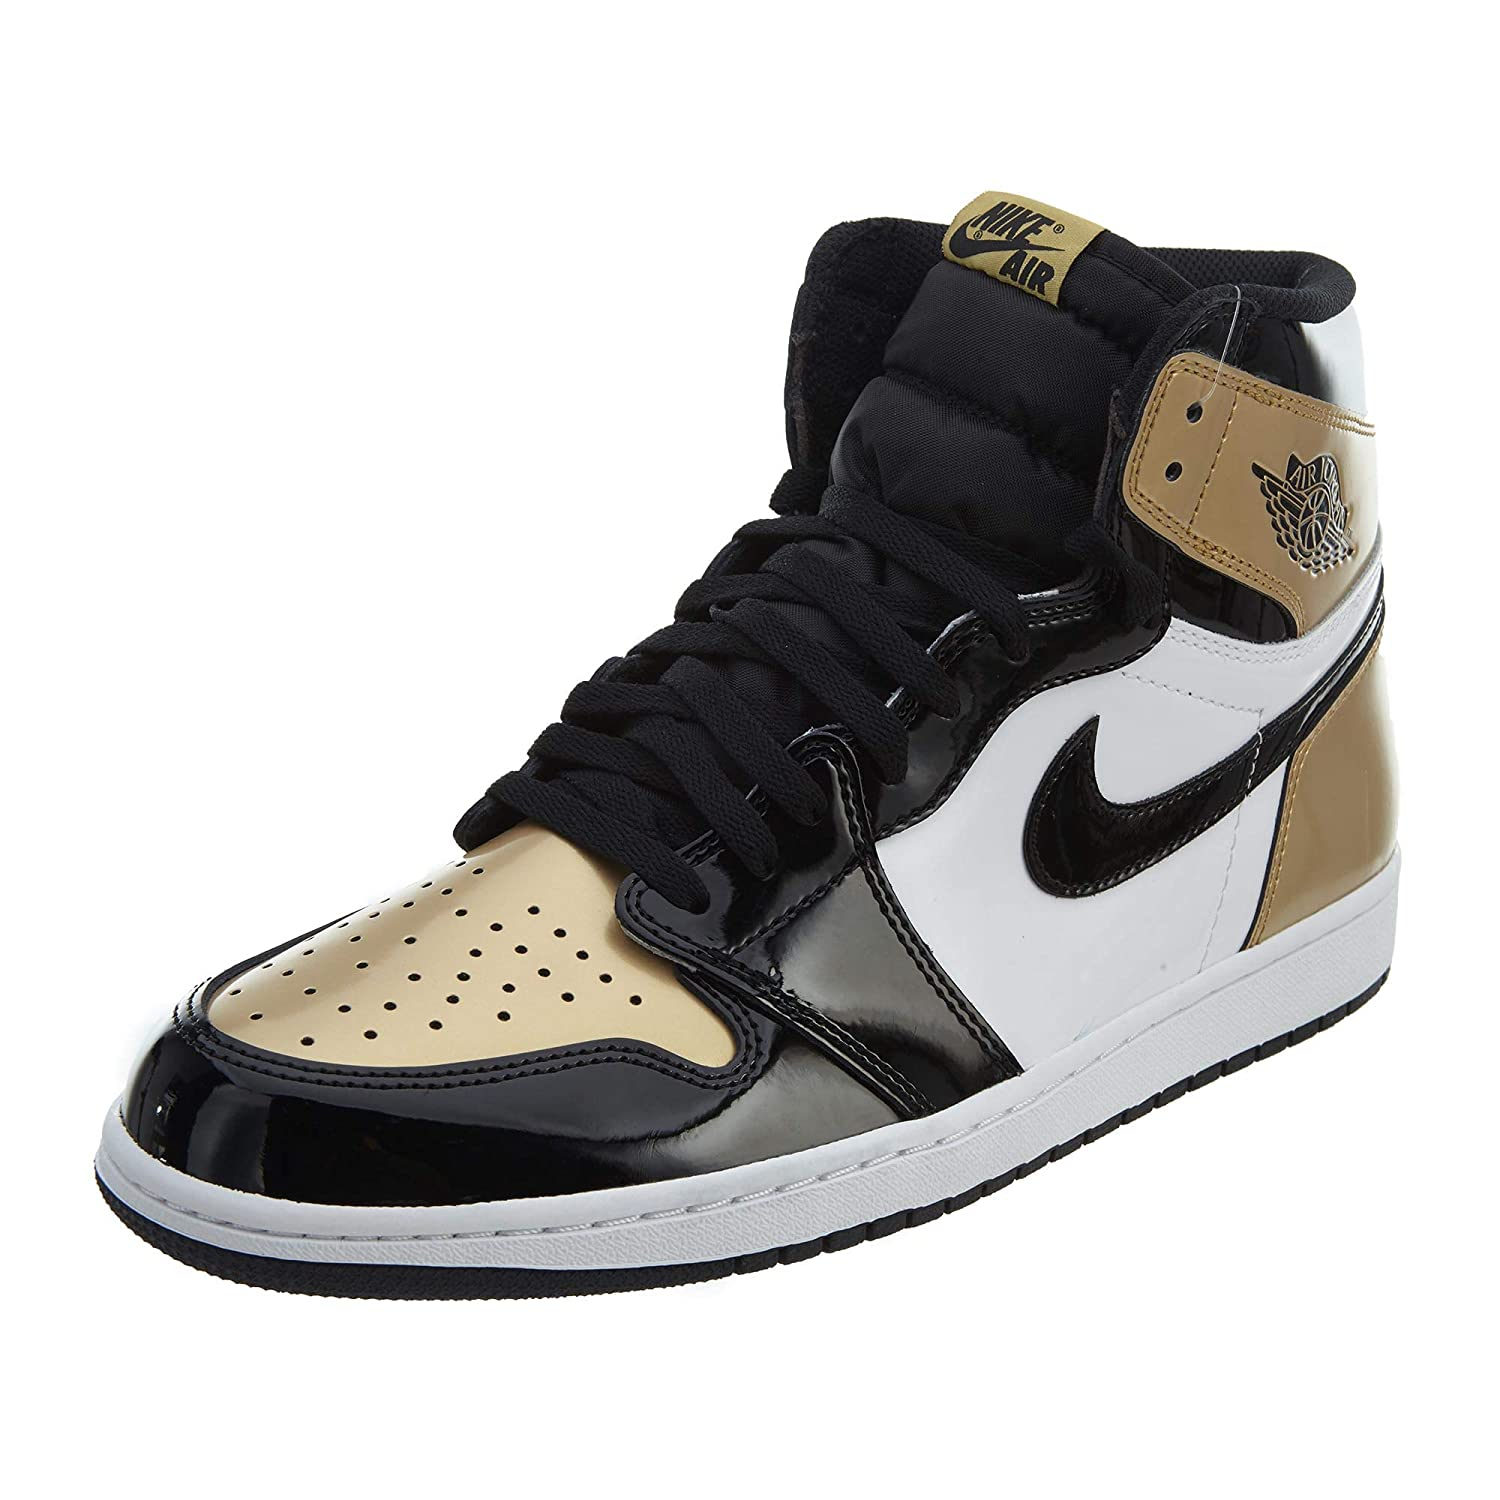 online store a6e37 20d67 Nike AIR Jordan 1 Retro HIGH OG NRG 'Gold TOP 3' - 861428 ...